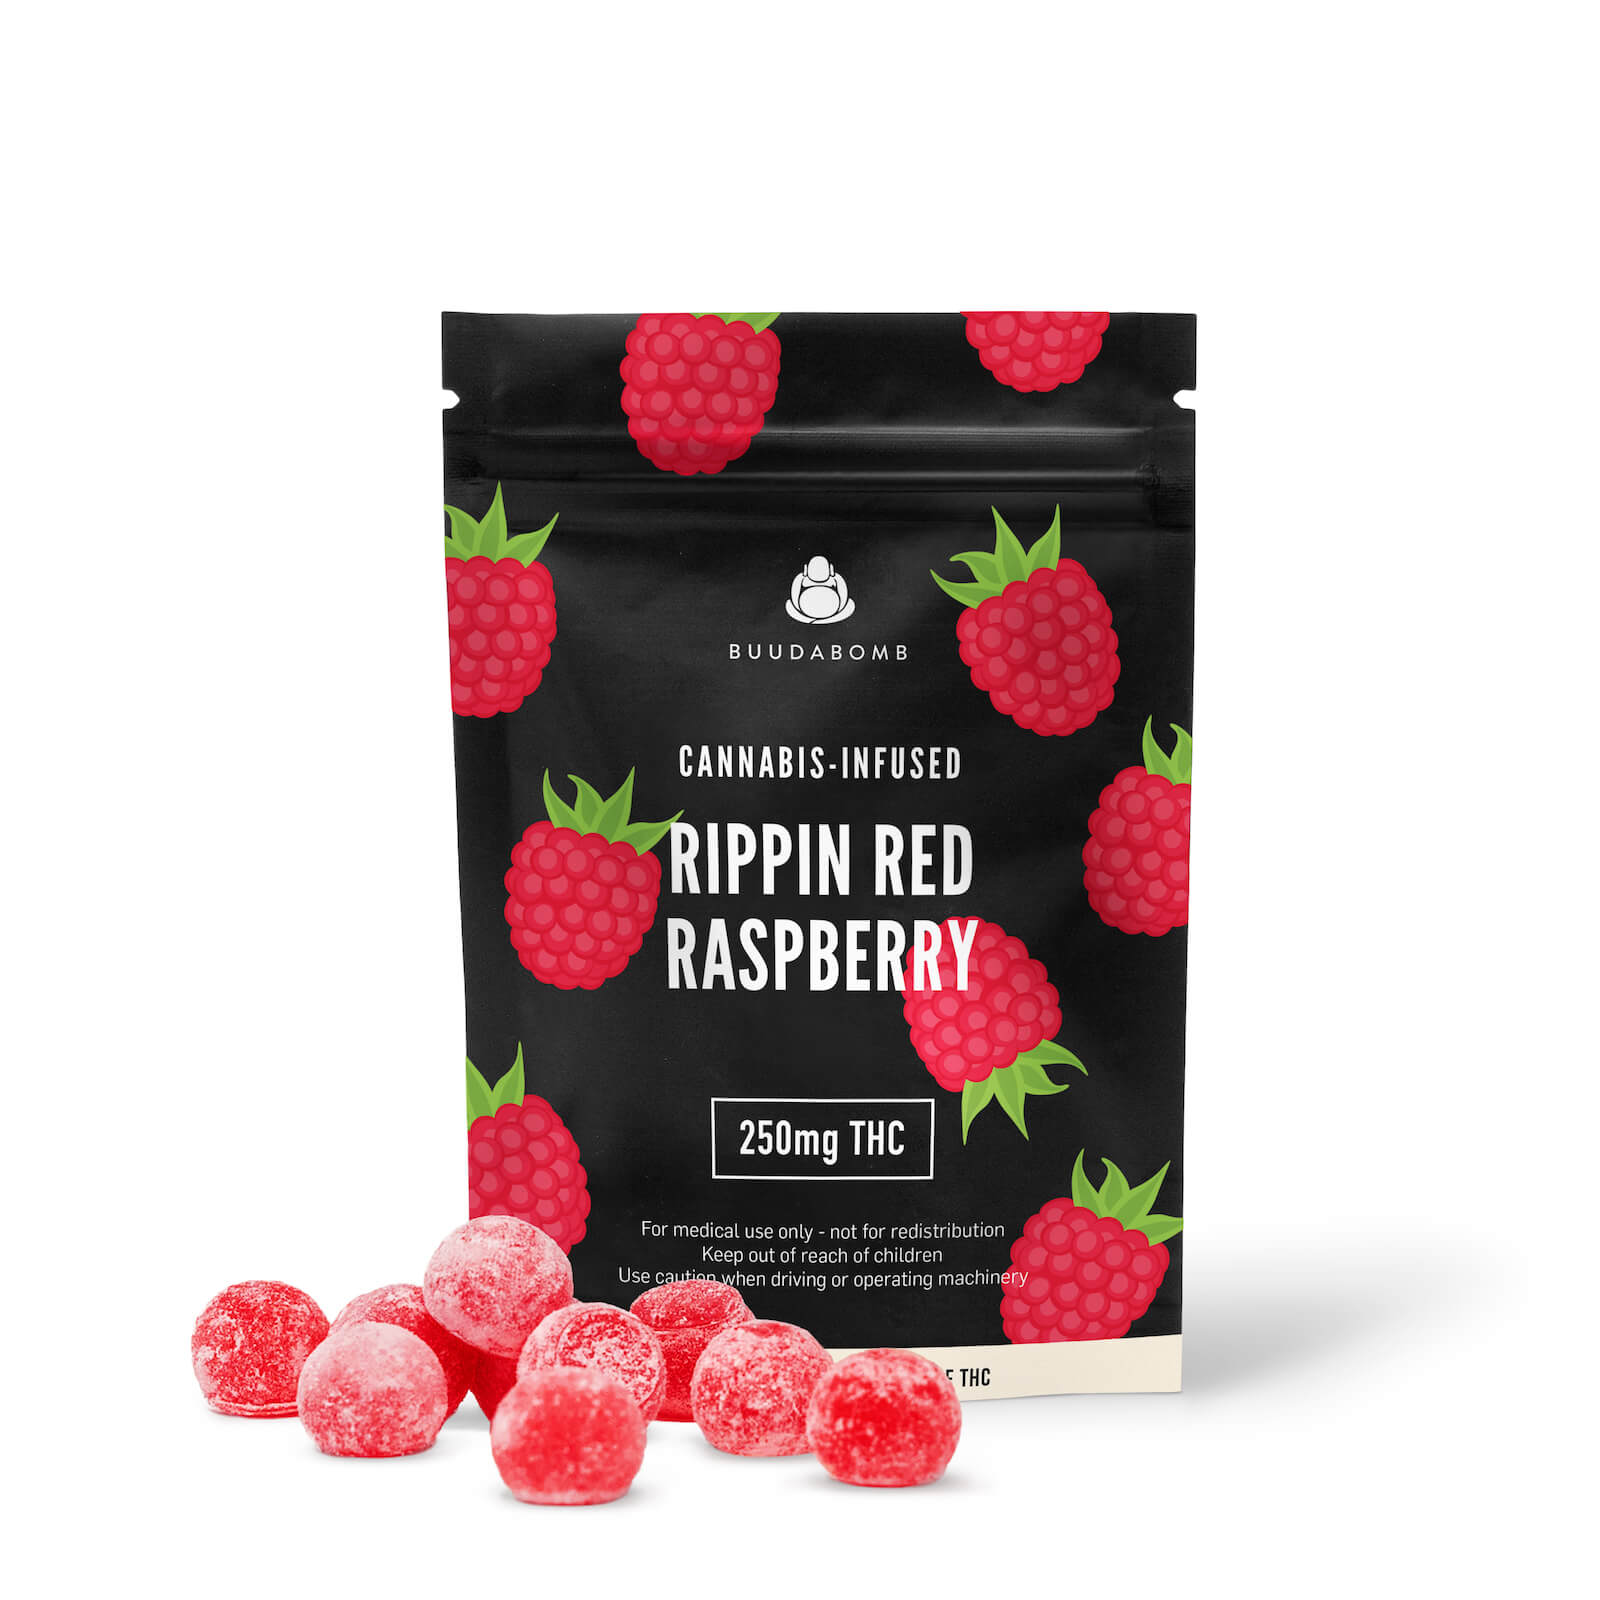 RIPPIN RED RASPBERRY 250mg - Buudabomb